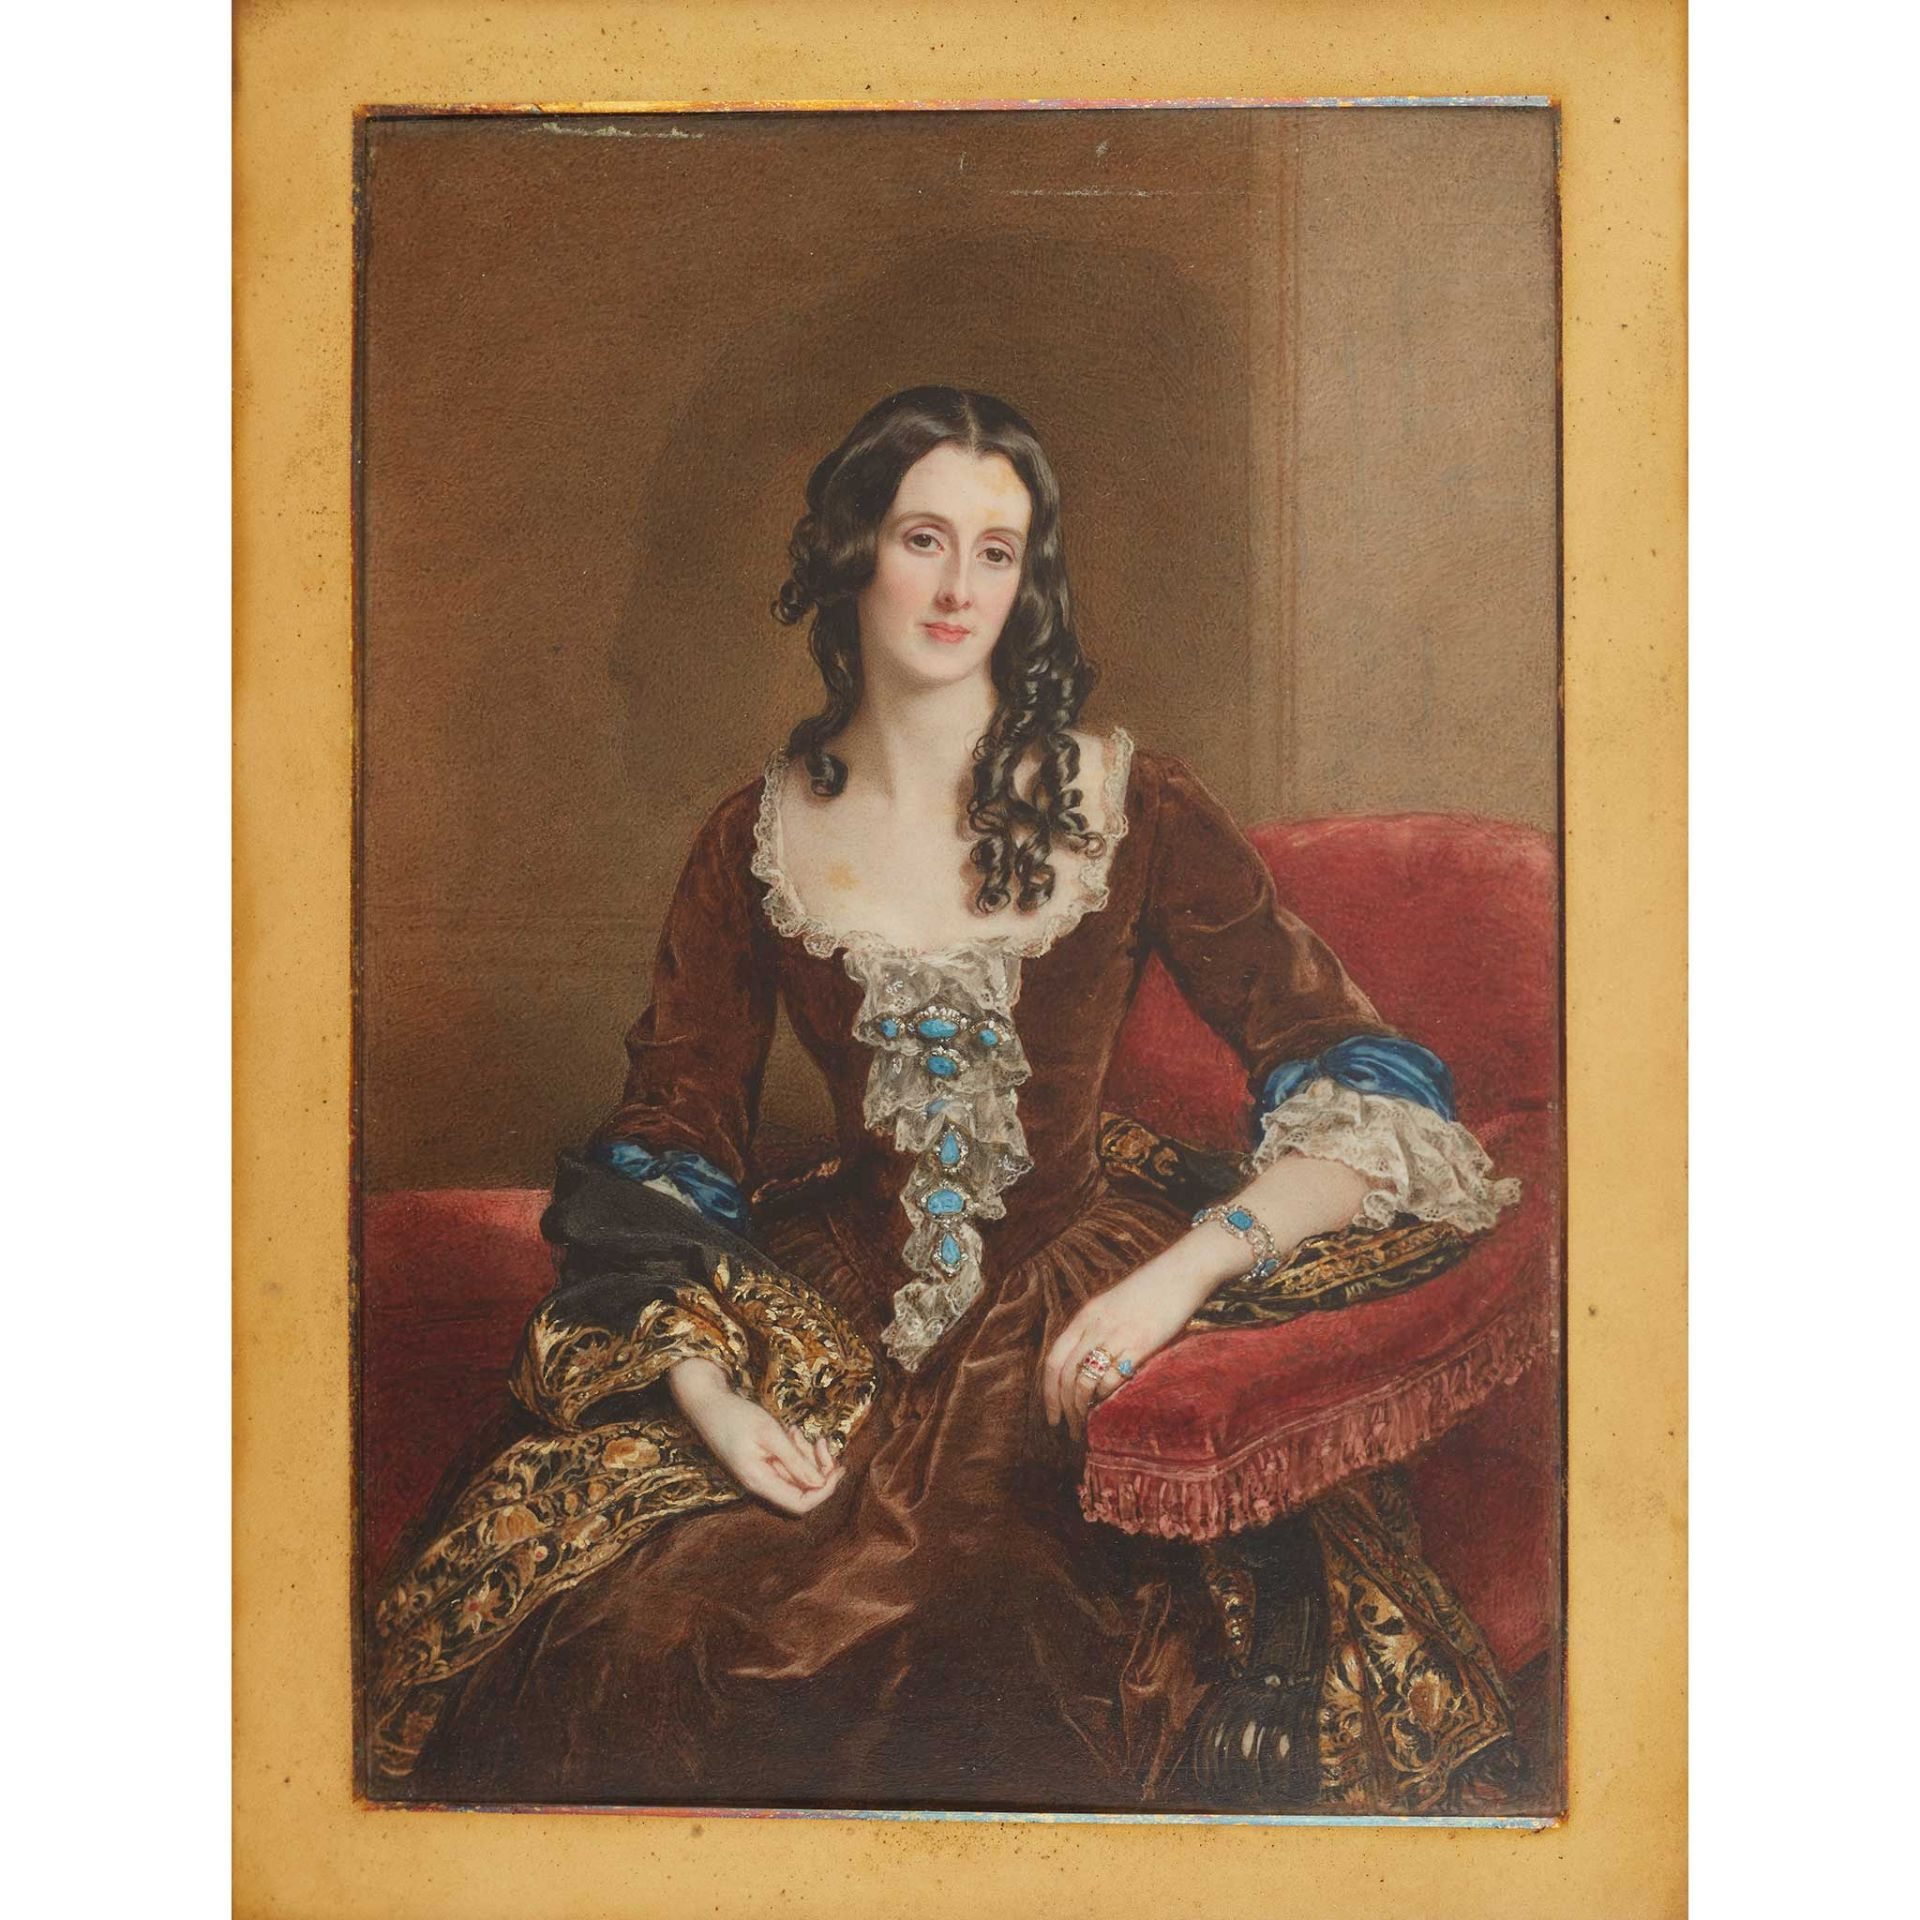 Y SIR WILLIAM CHARLES ROSS, R.A., (1794-1860) THE MARCHIONESS OF BREADALBANE, MARY GAVIN CAMPBELL